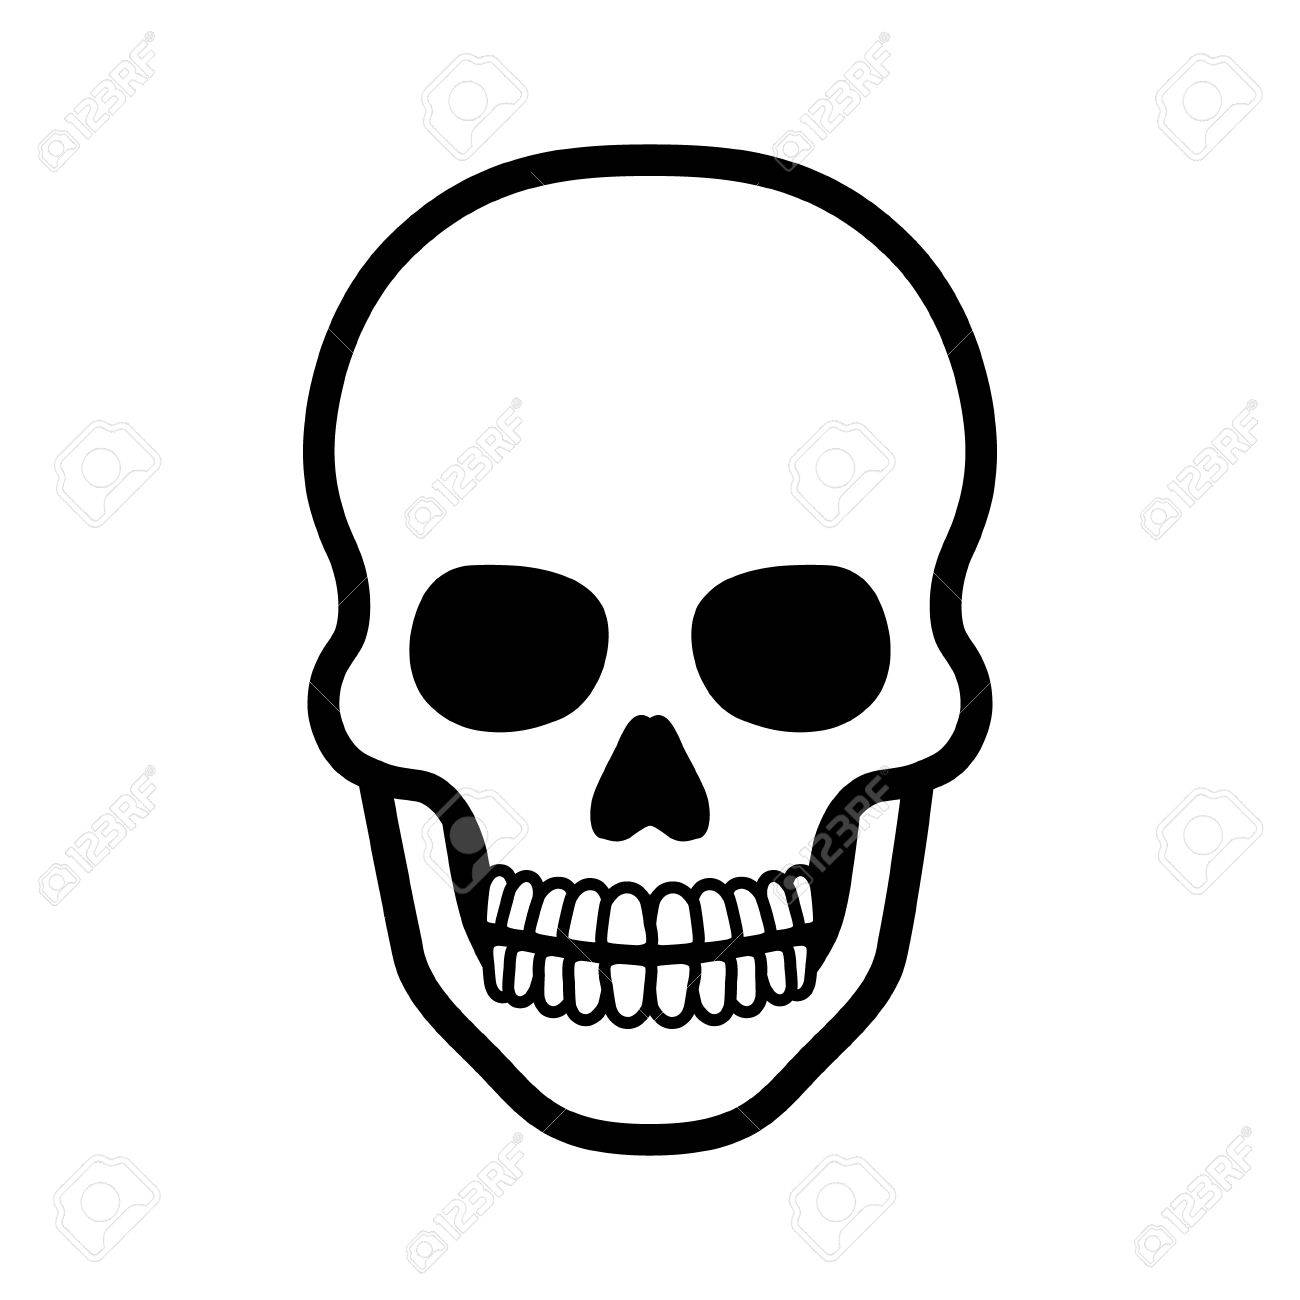 1300x1300 Death Skull Or Human Skull Line Art Icon For Games And Websites